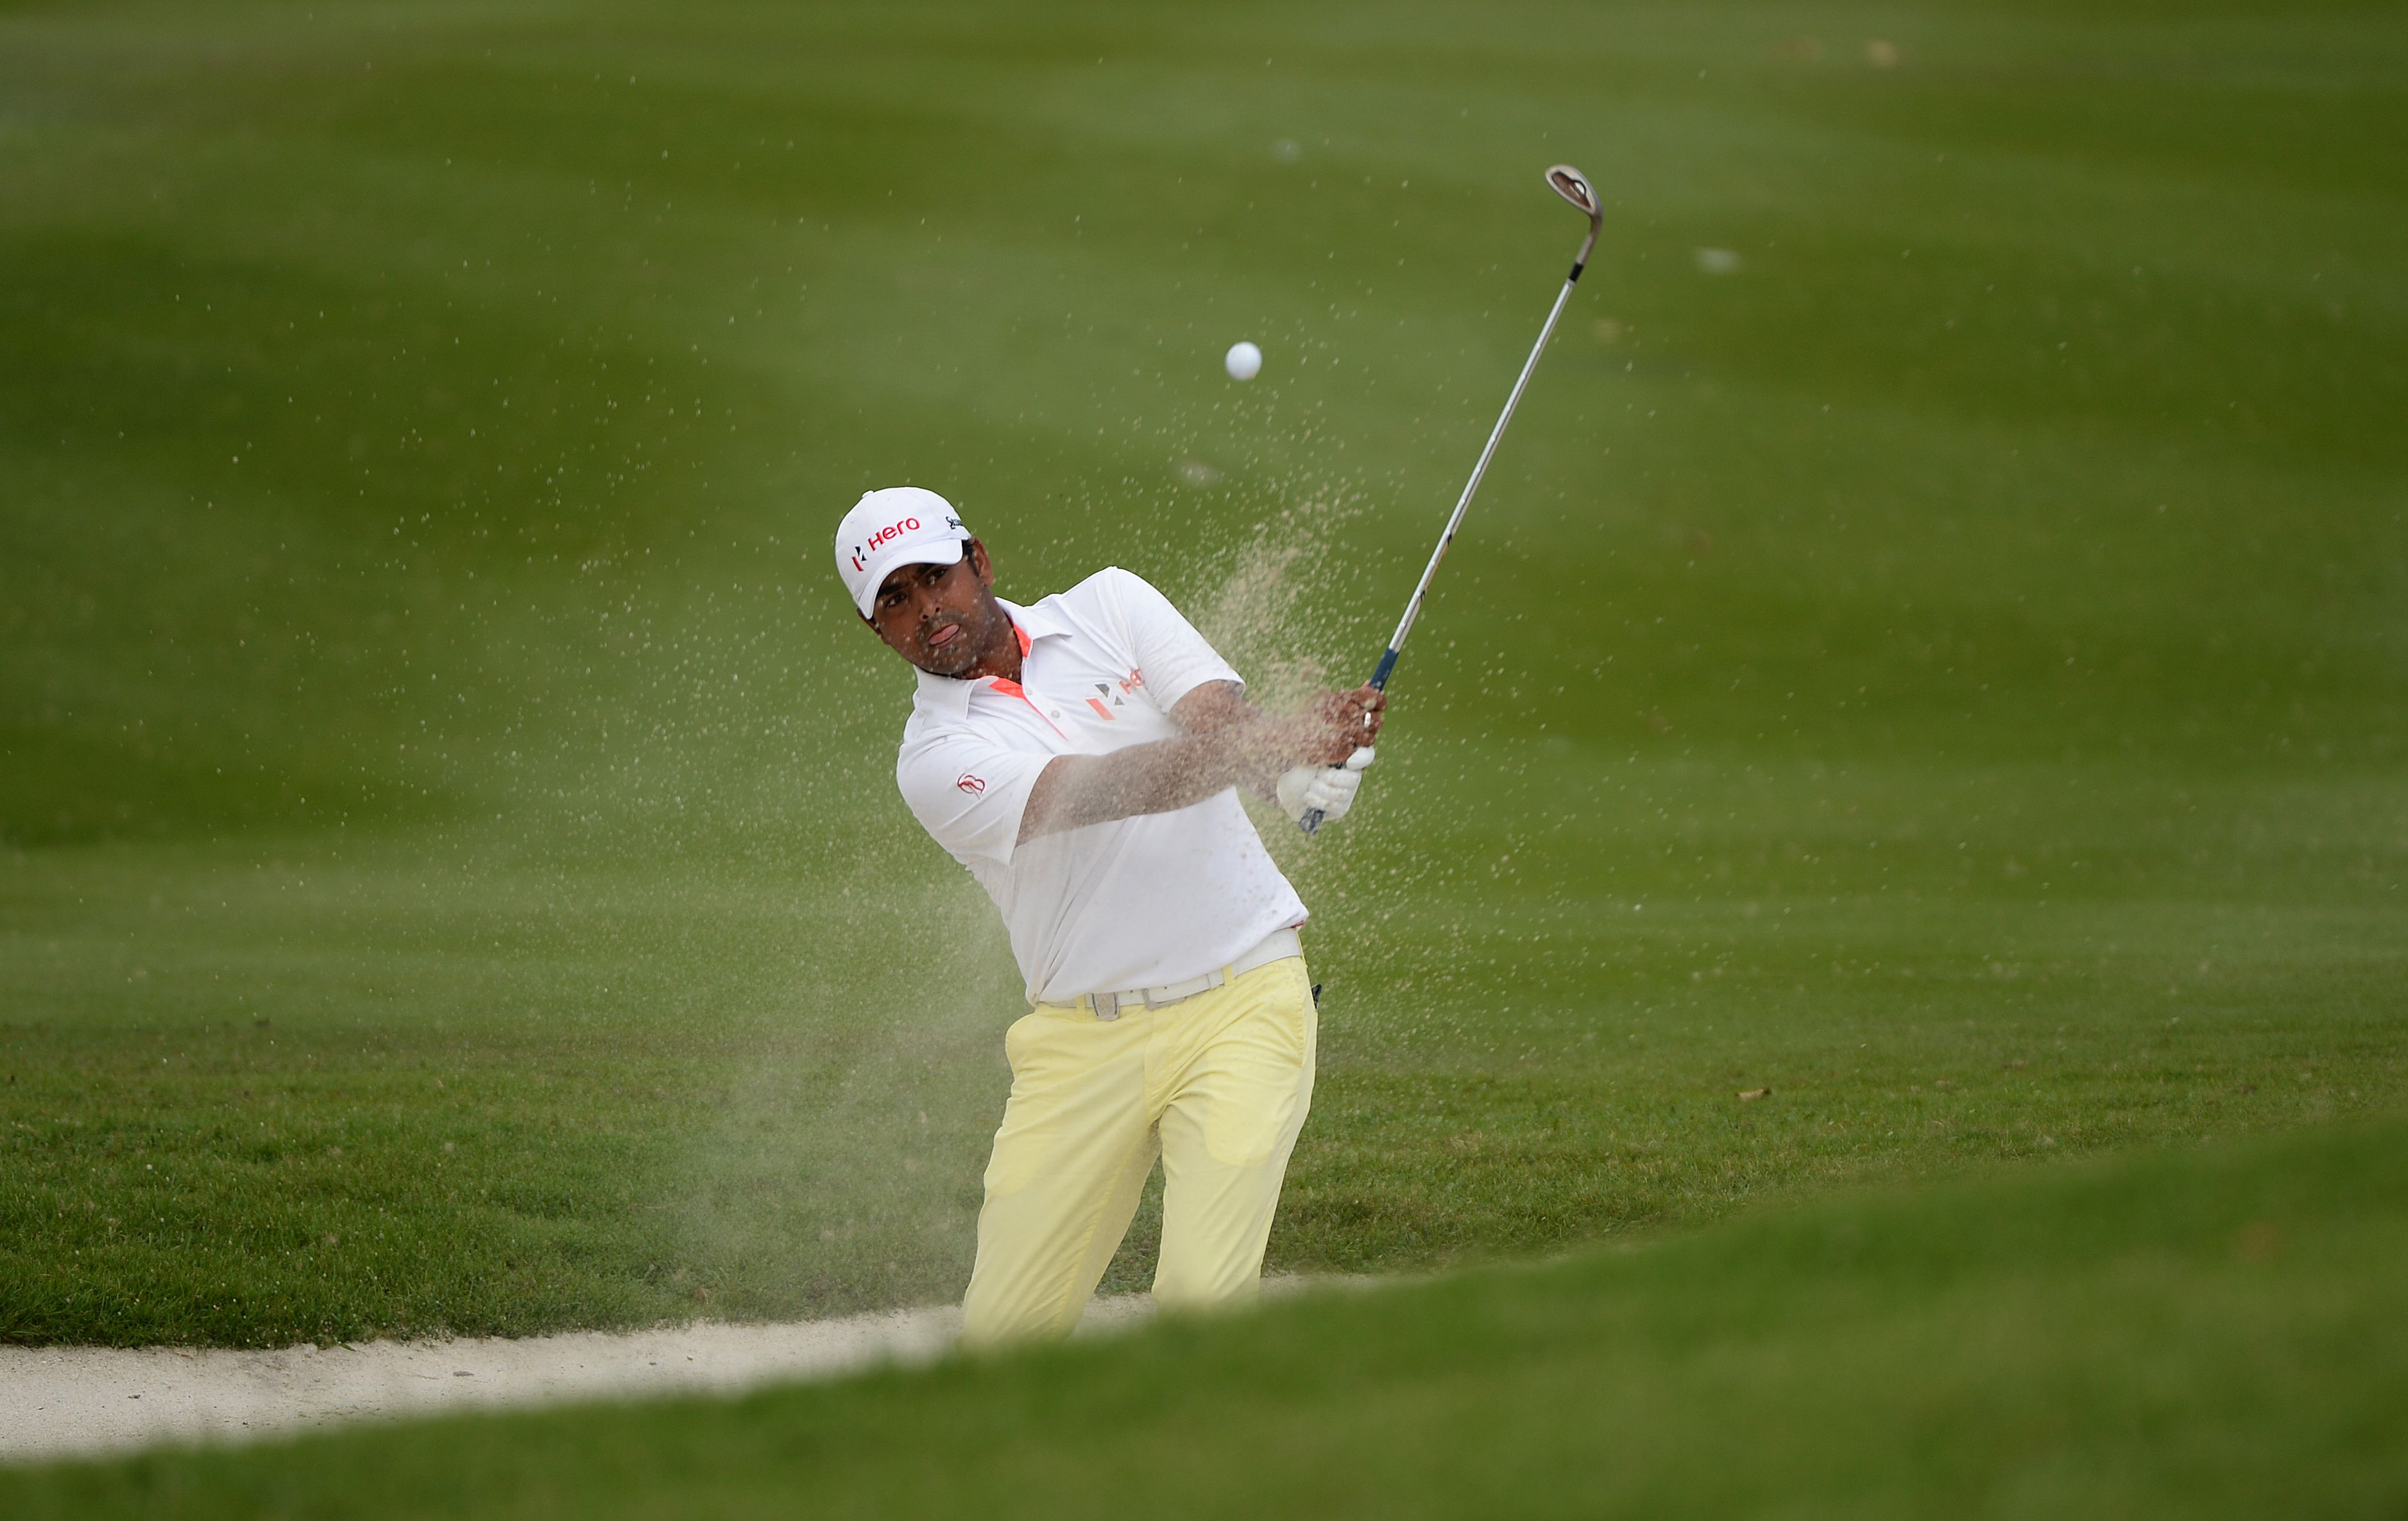 Anirban Lahiri will enjoy the support of his family and coach at The Open this month